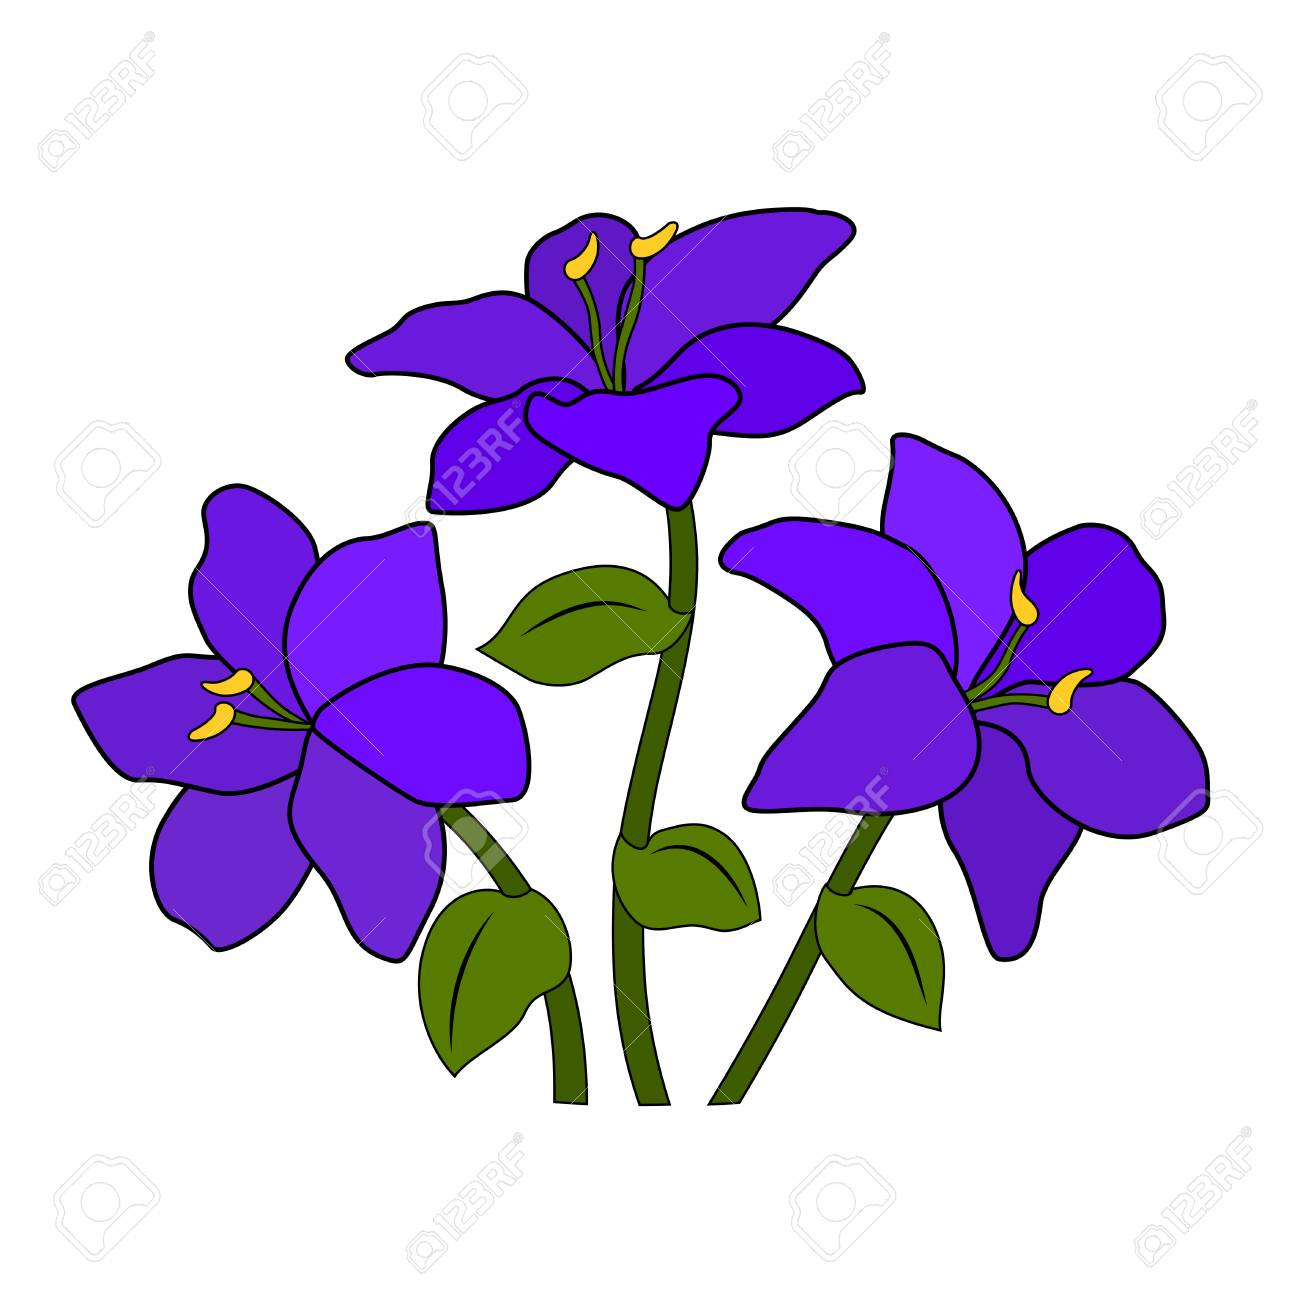 A Bouquet Or A Bed Of Purple Lilac Violet Flowers Six Petals Royalty Free Cliparts Vectors And Stock Illustration Image 112340642